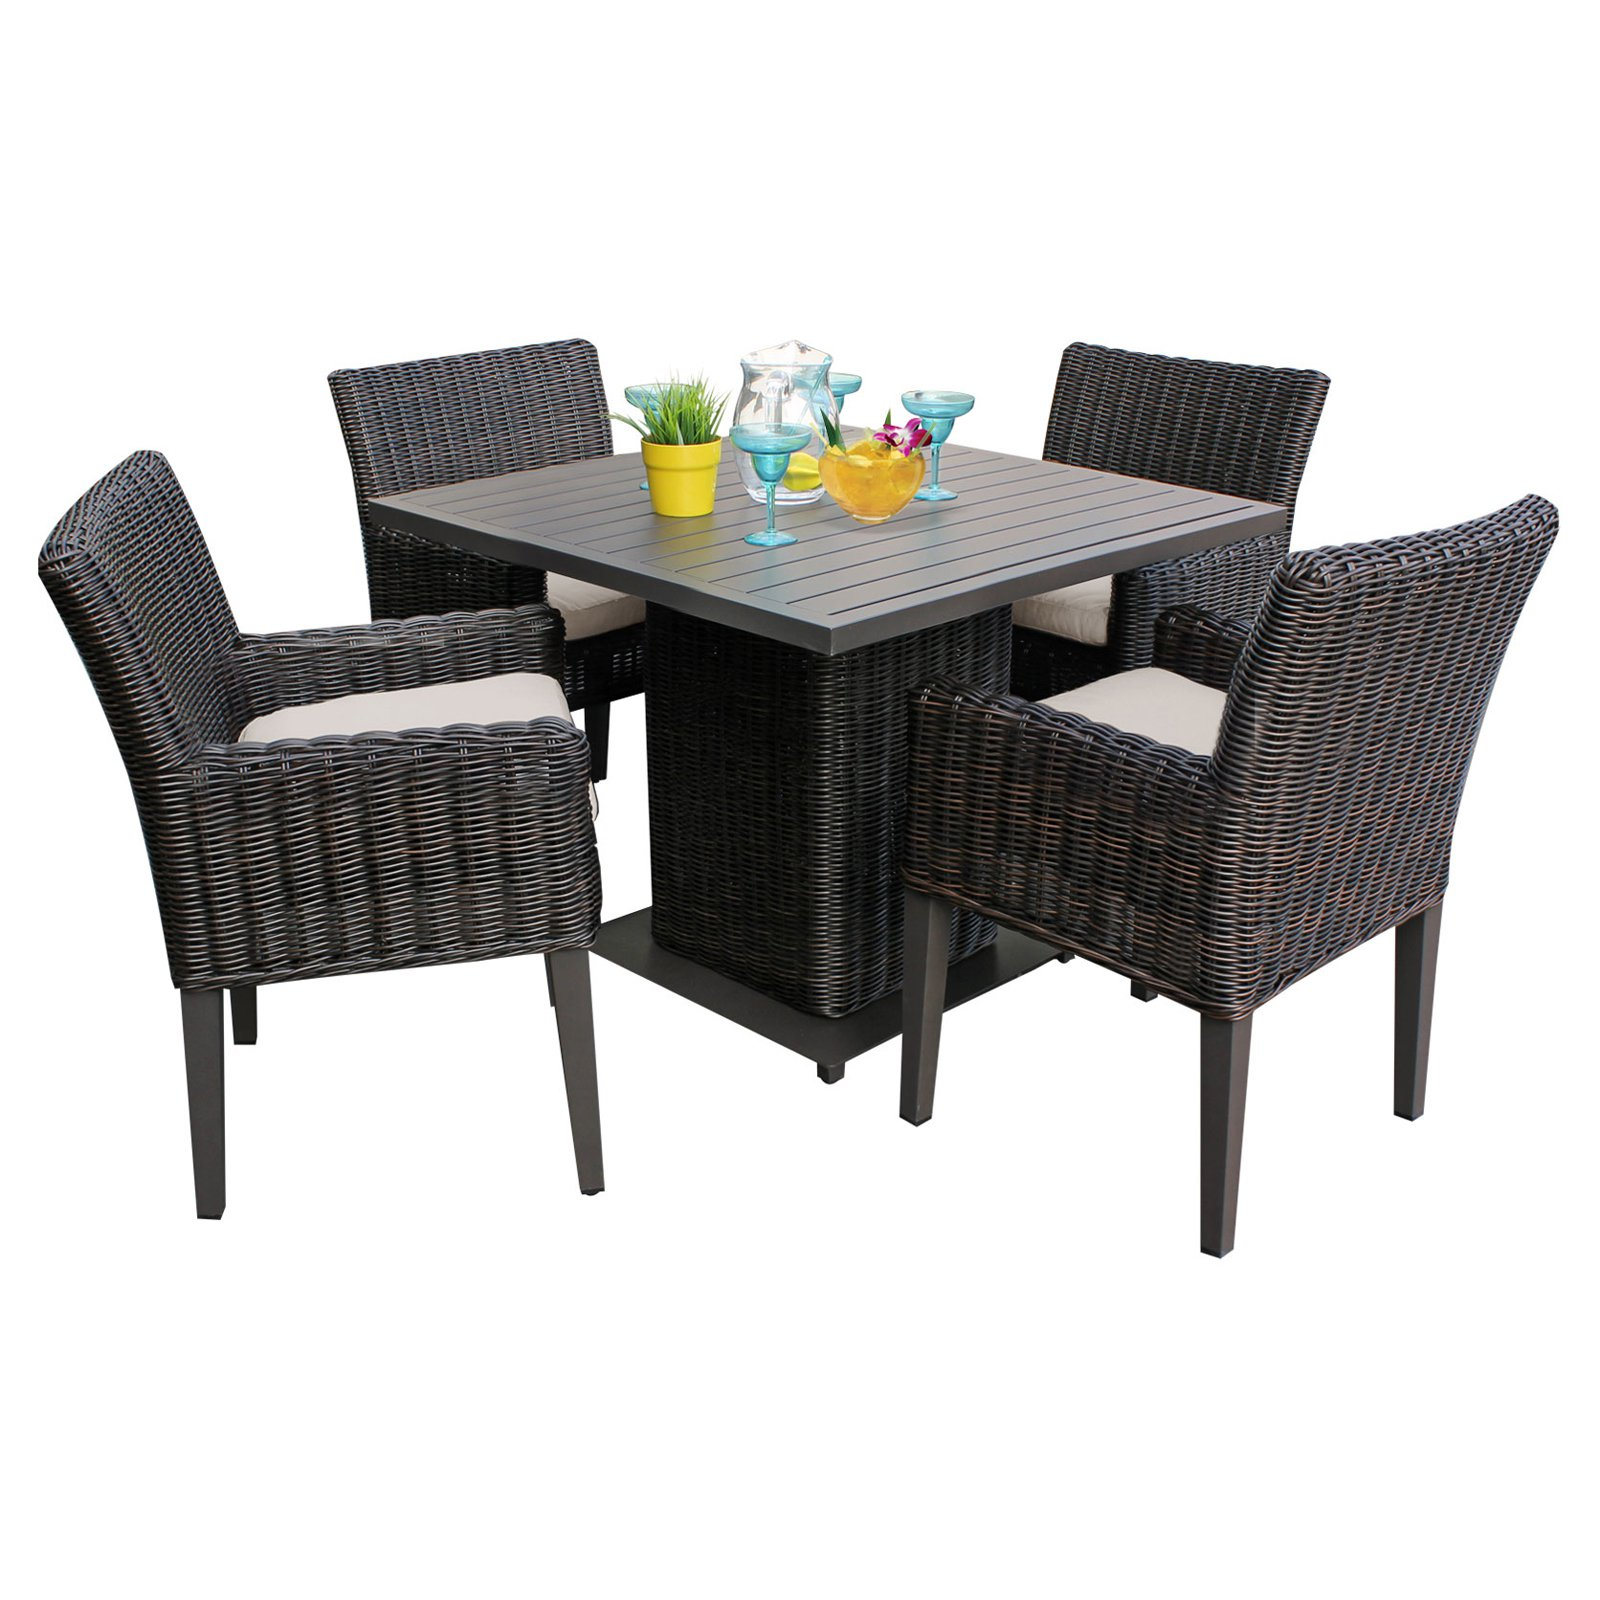 tk classics venice wicker 5 piece square patio dining set with 8 cushion covers